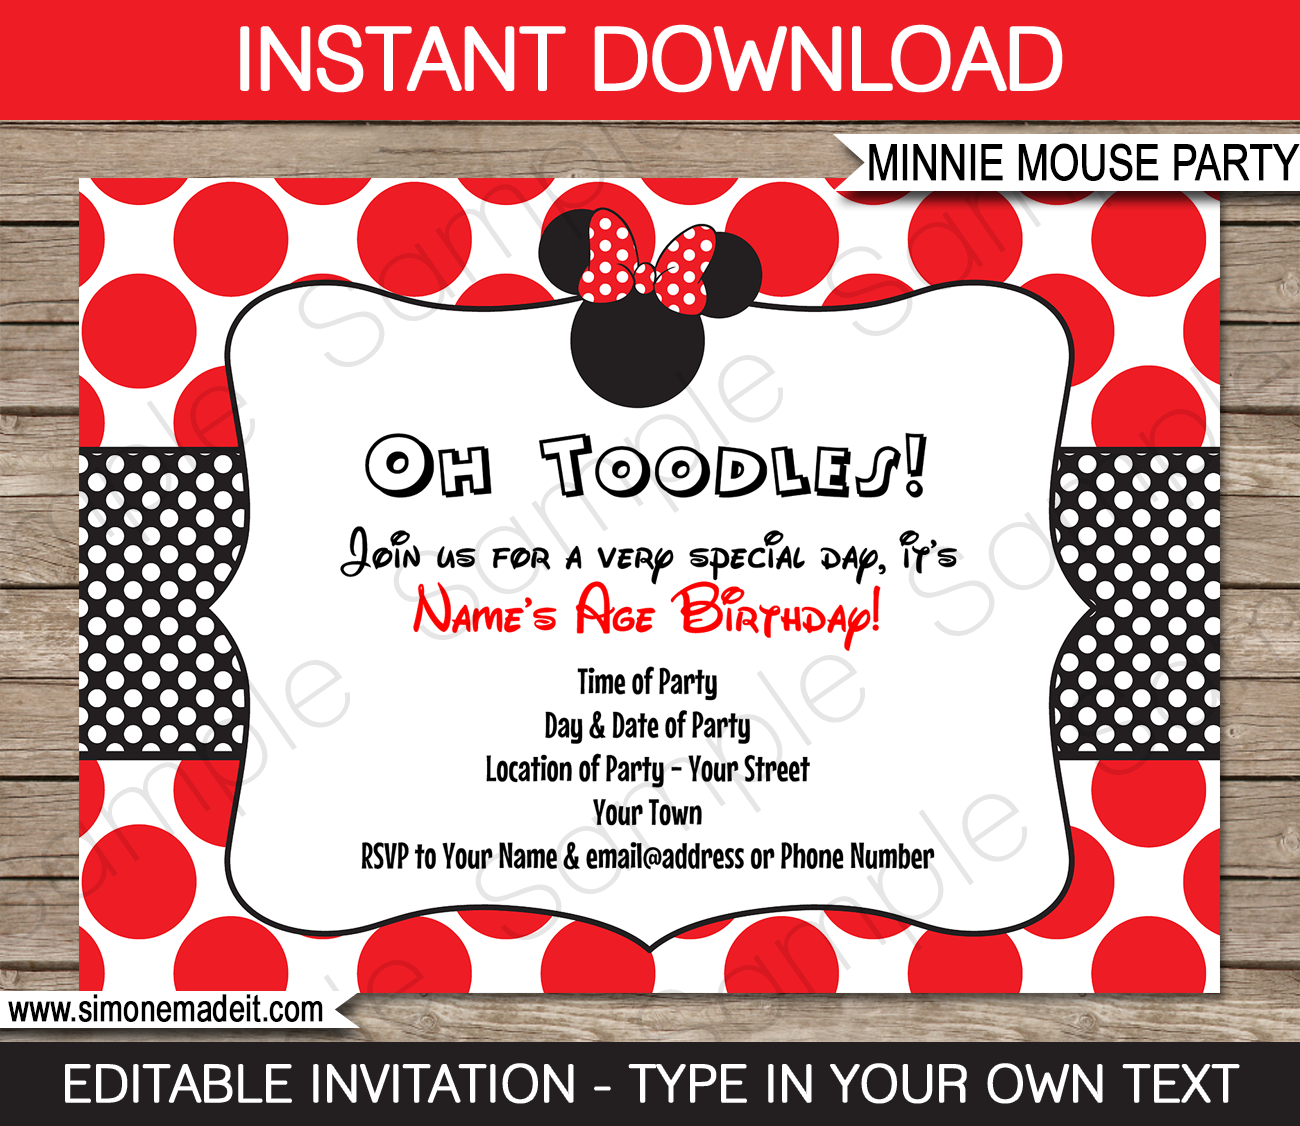 Minnie mouse birthday party invitations template red minnie mouse birthday party invitations template red stopboris Gallery